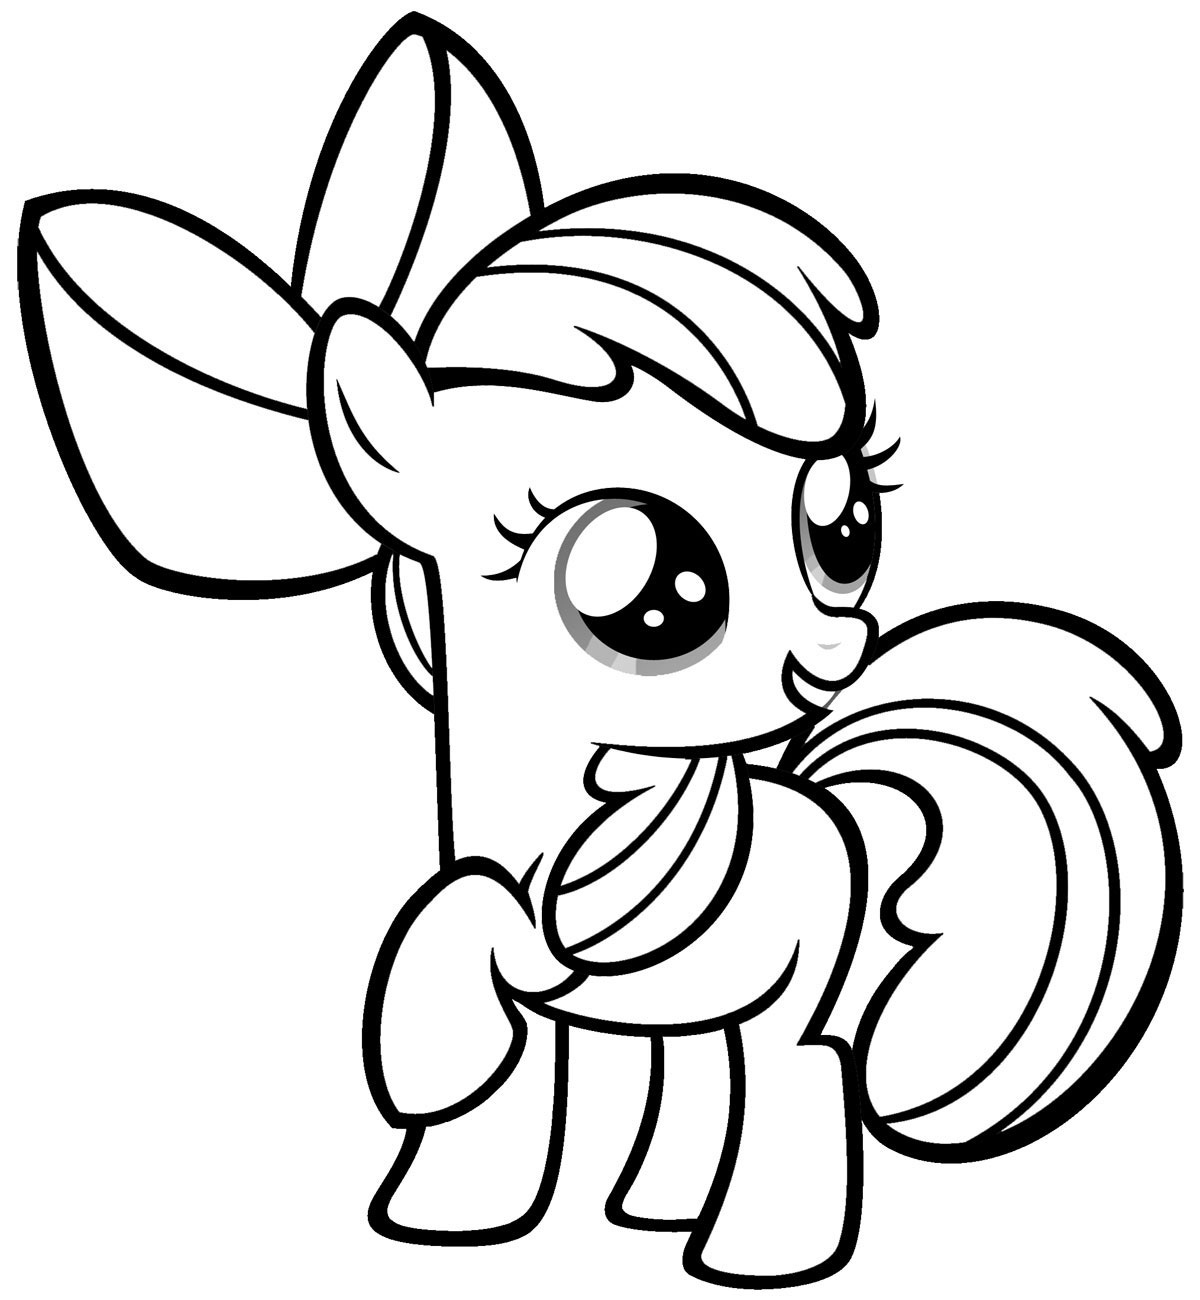 My Little Pony Coloring Pages 2018- Dr. Odd